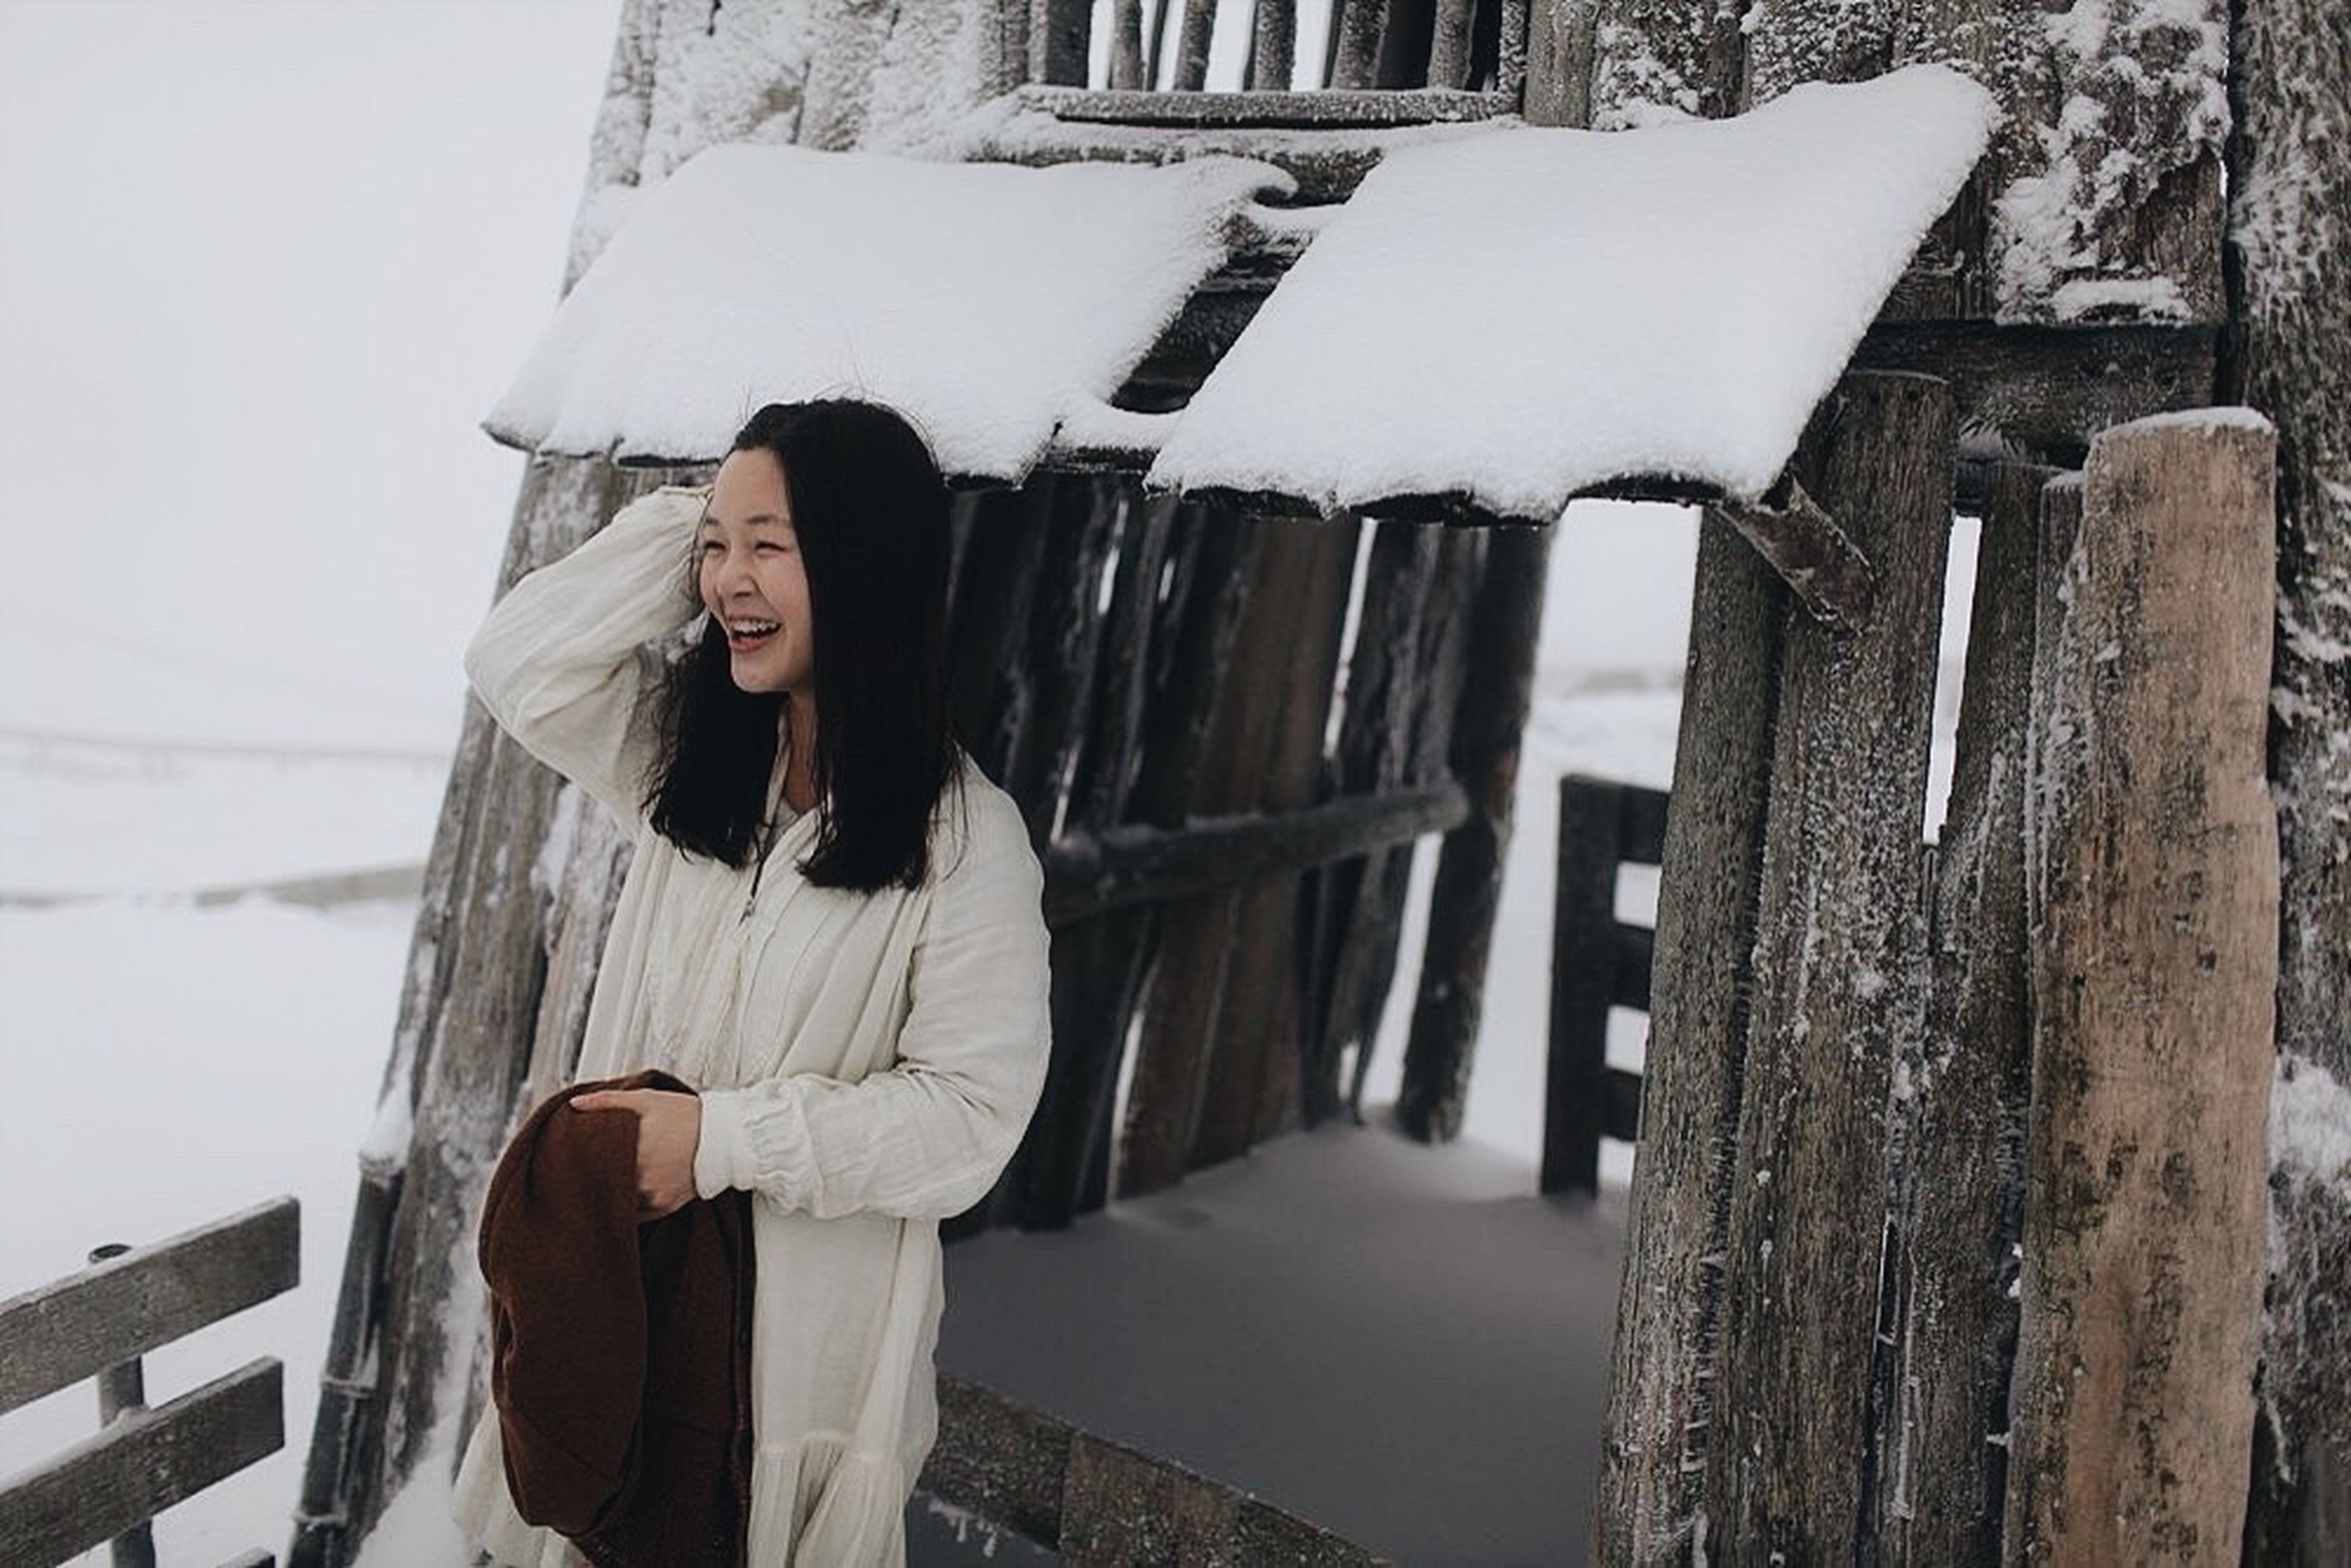 winter, snow, cold temperature, season, wood - material, covering, focus on foreground, day, weather, lifestyles, built structure, outdoors, building exterior, frozen, rear view, standing, warm clothing, white color